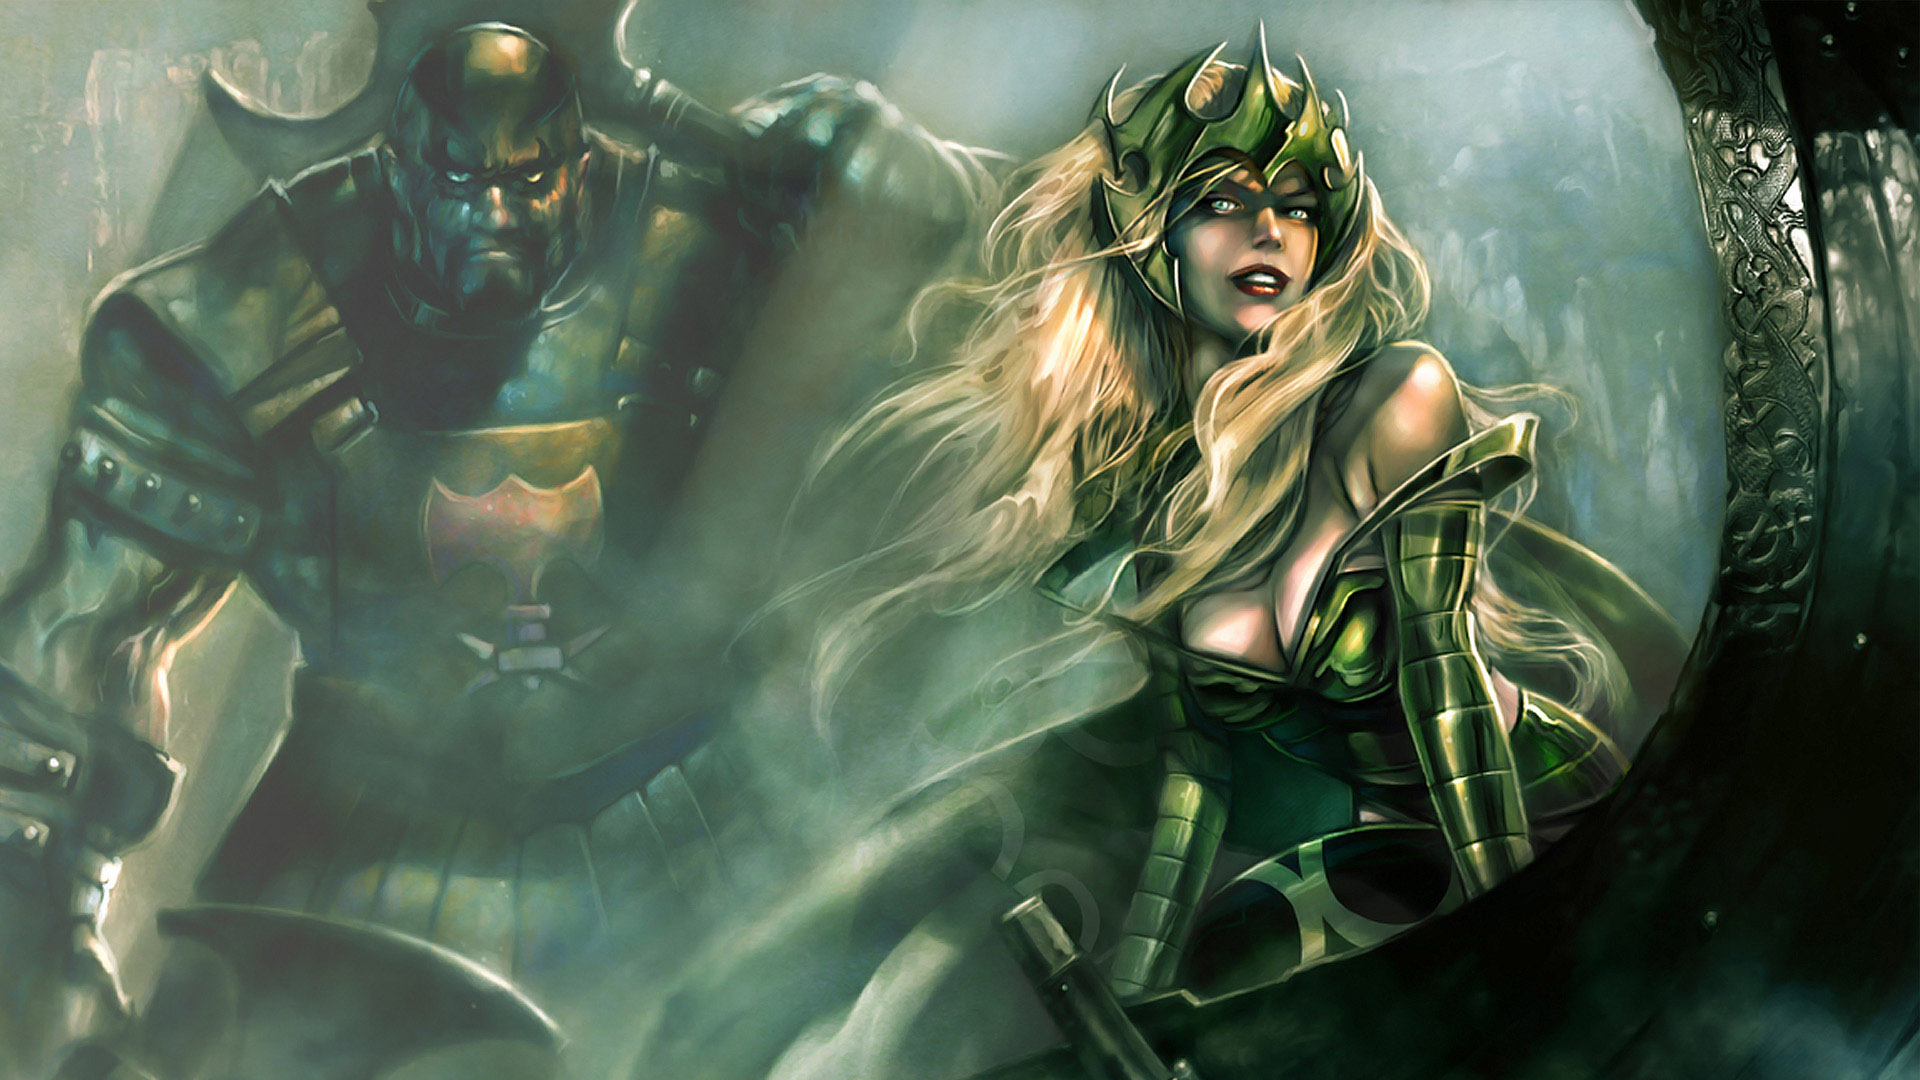 Enchantress HD Wallpaper Background Image 1920x1080 ID88456 Wallpaper Abyss